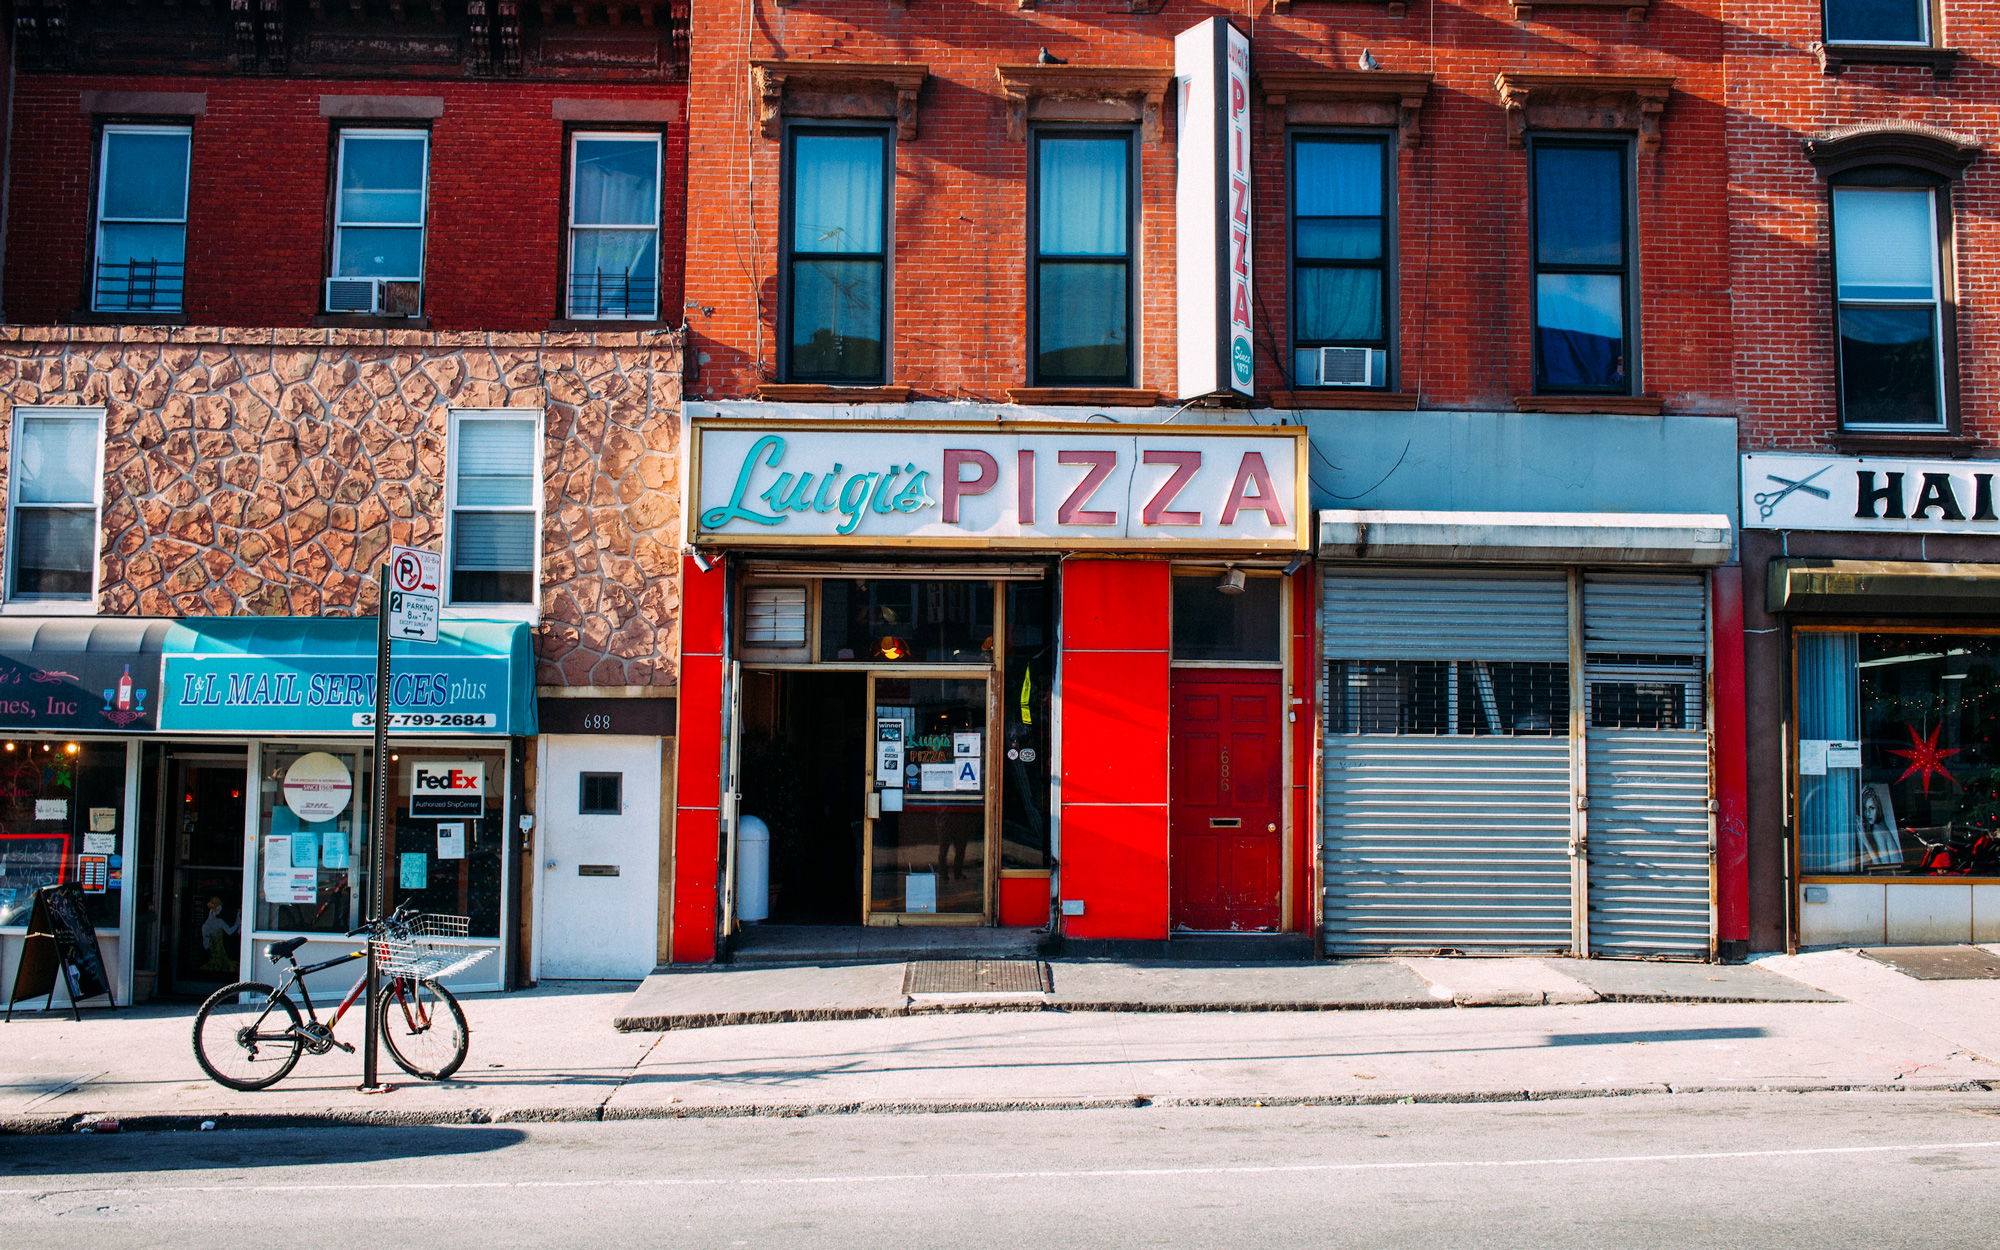 Take a Tour of New York's Old-School Pizza Joints in this New Book